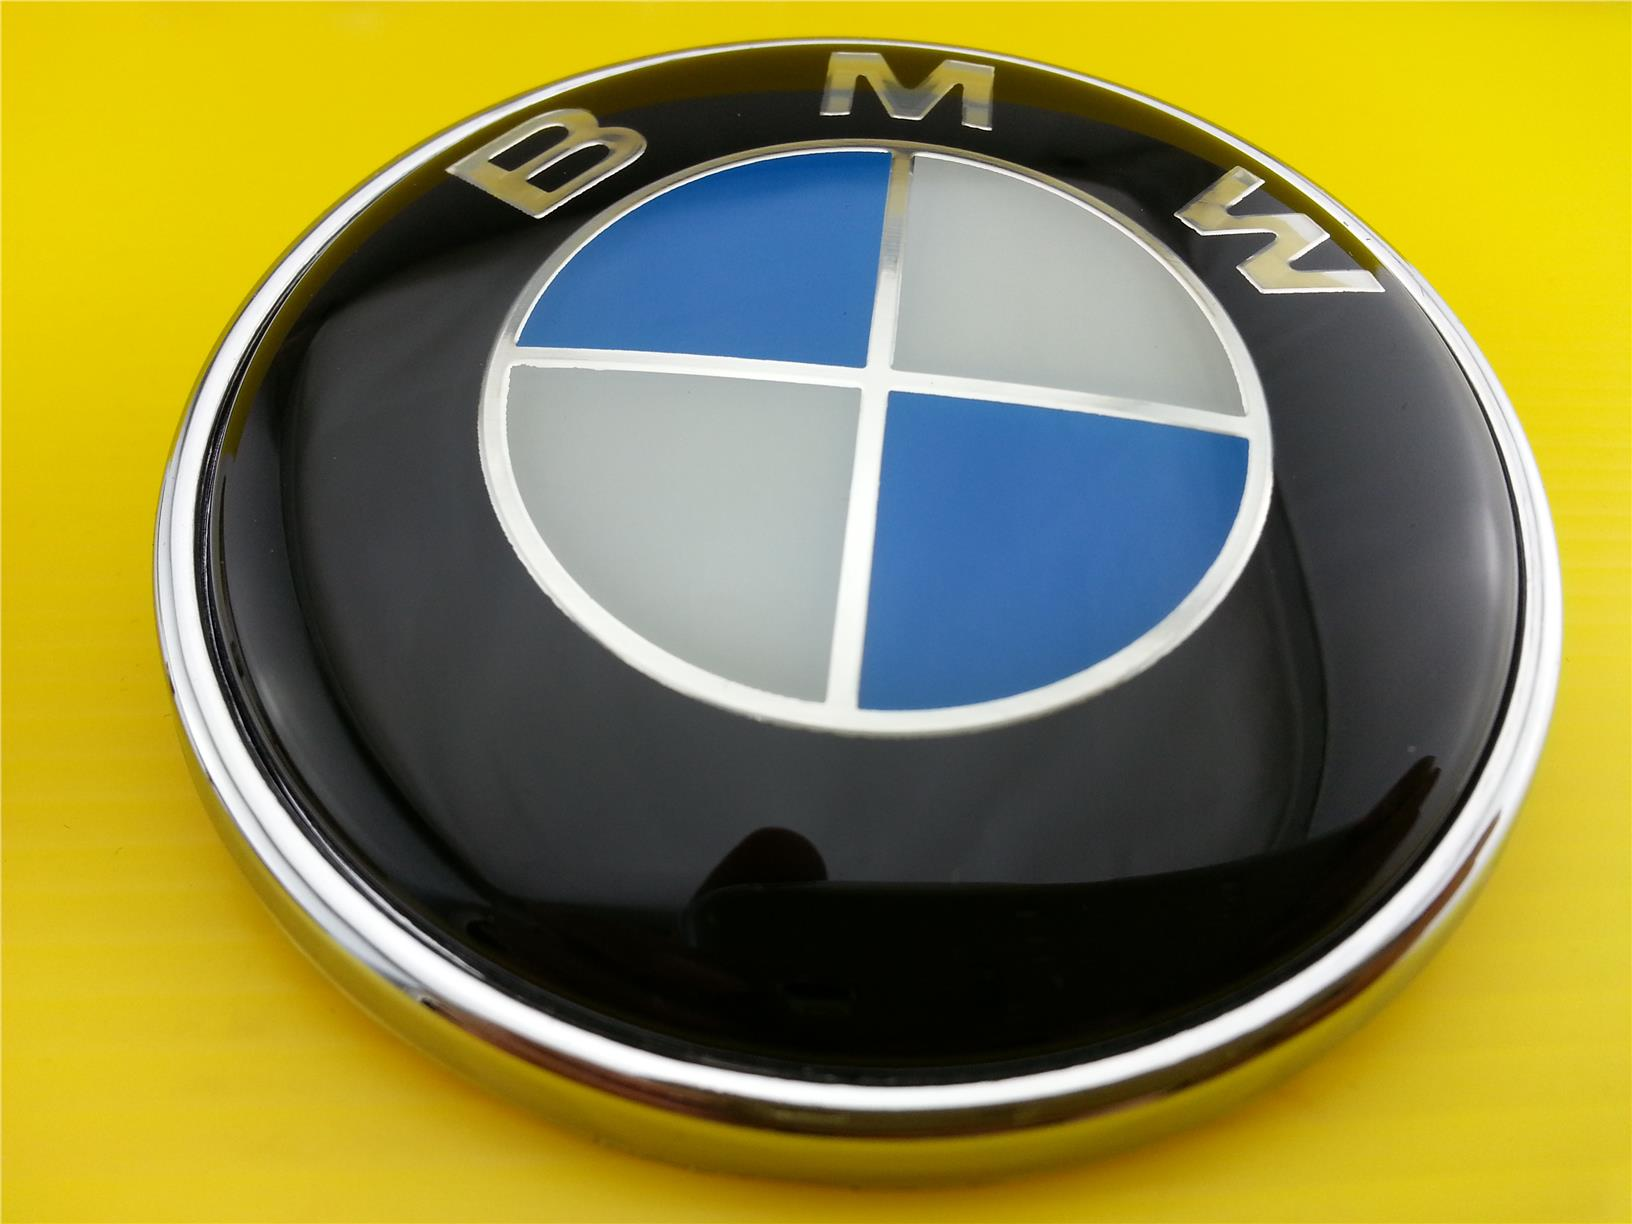 New BMW EMBLEM LOGO FRONT OR REAR SIZE 73MM & 82MM (2 Pins)